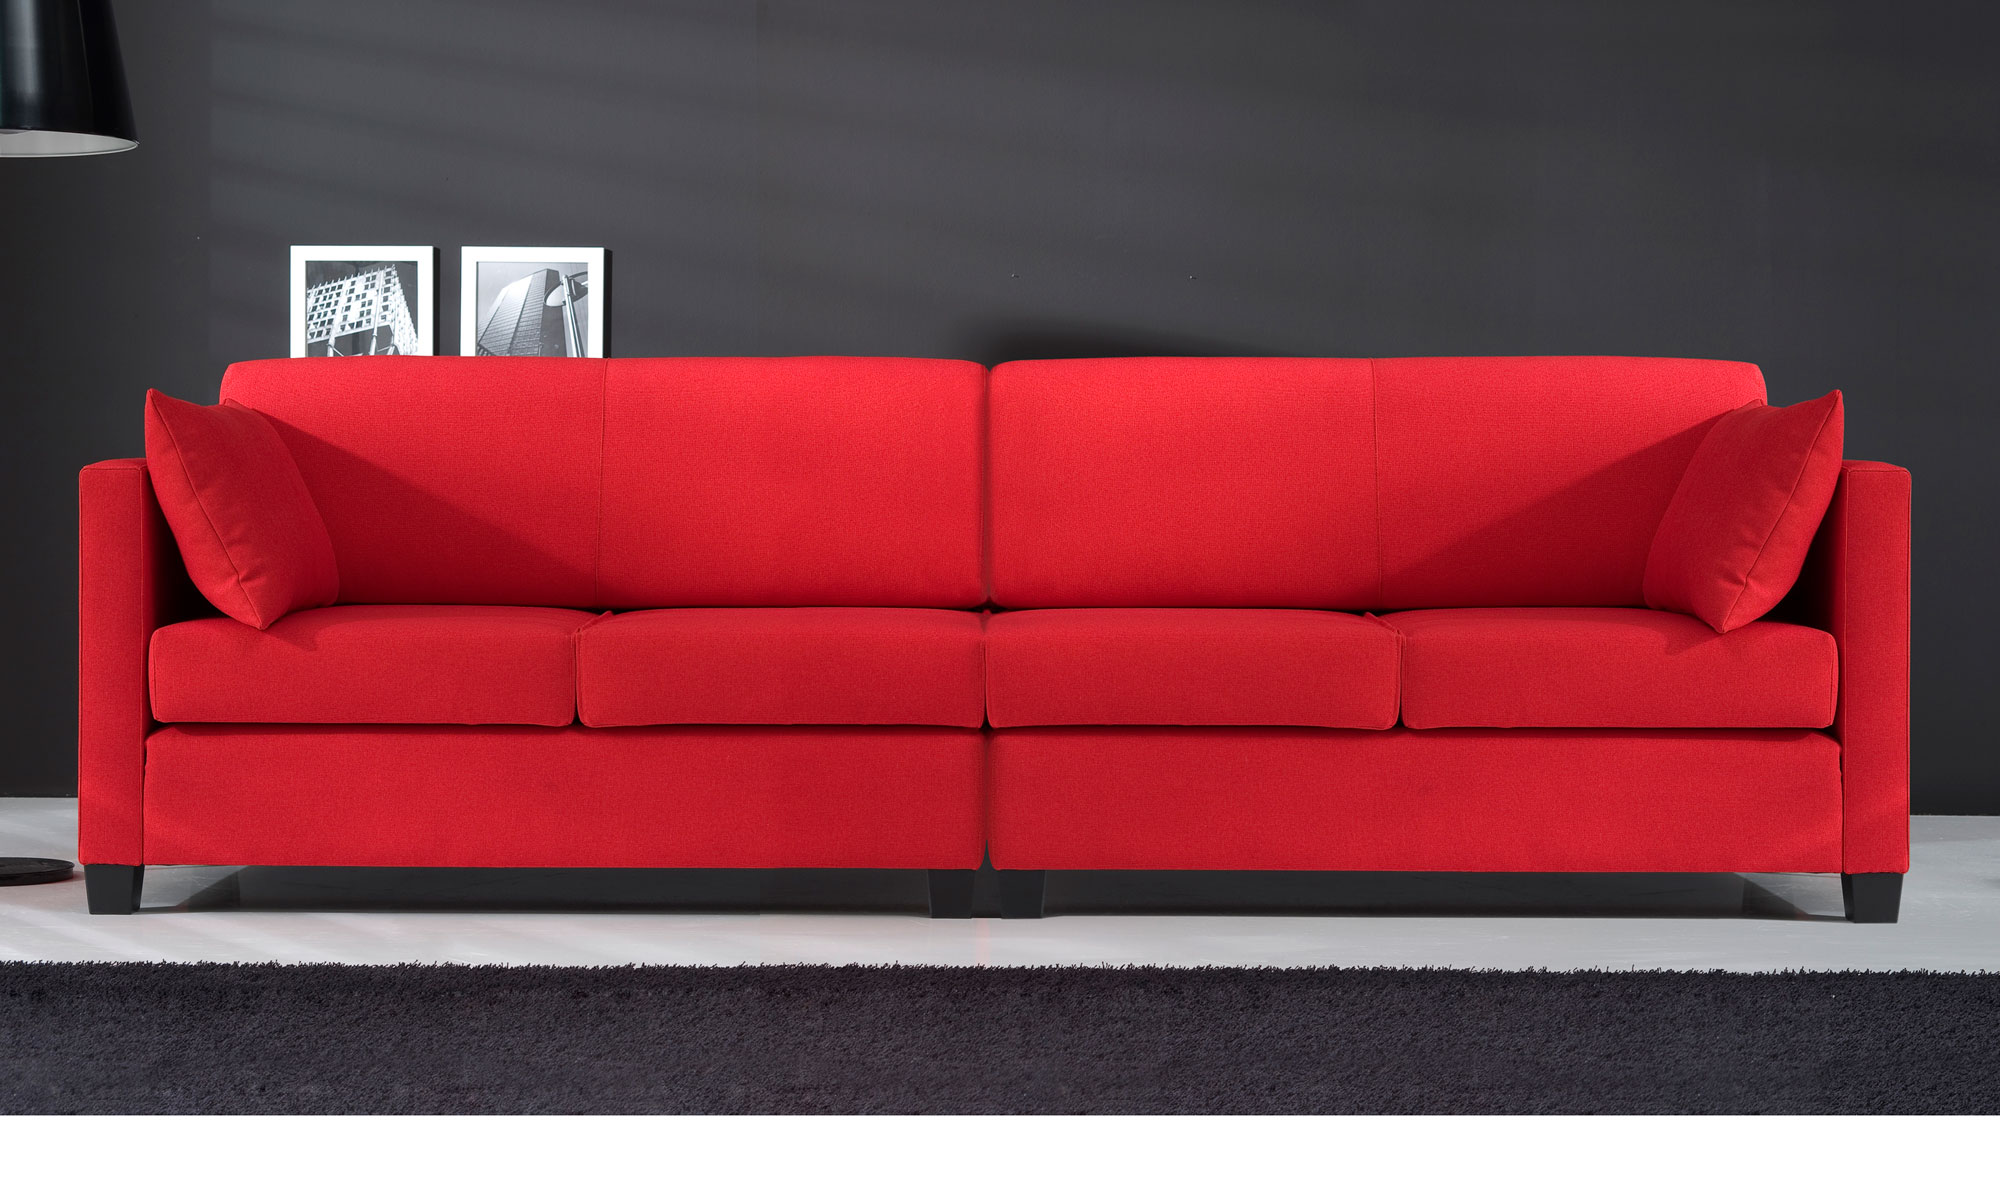 Muebles rey sofa cama fabulous chaise longue berln chaise - Muebles rey sofas ...